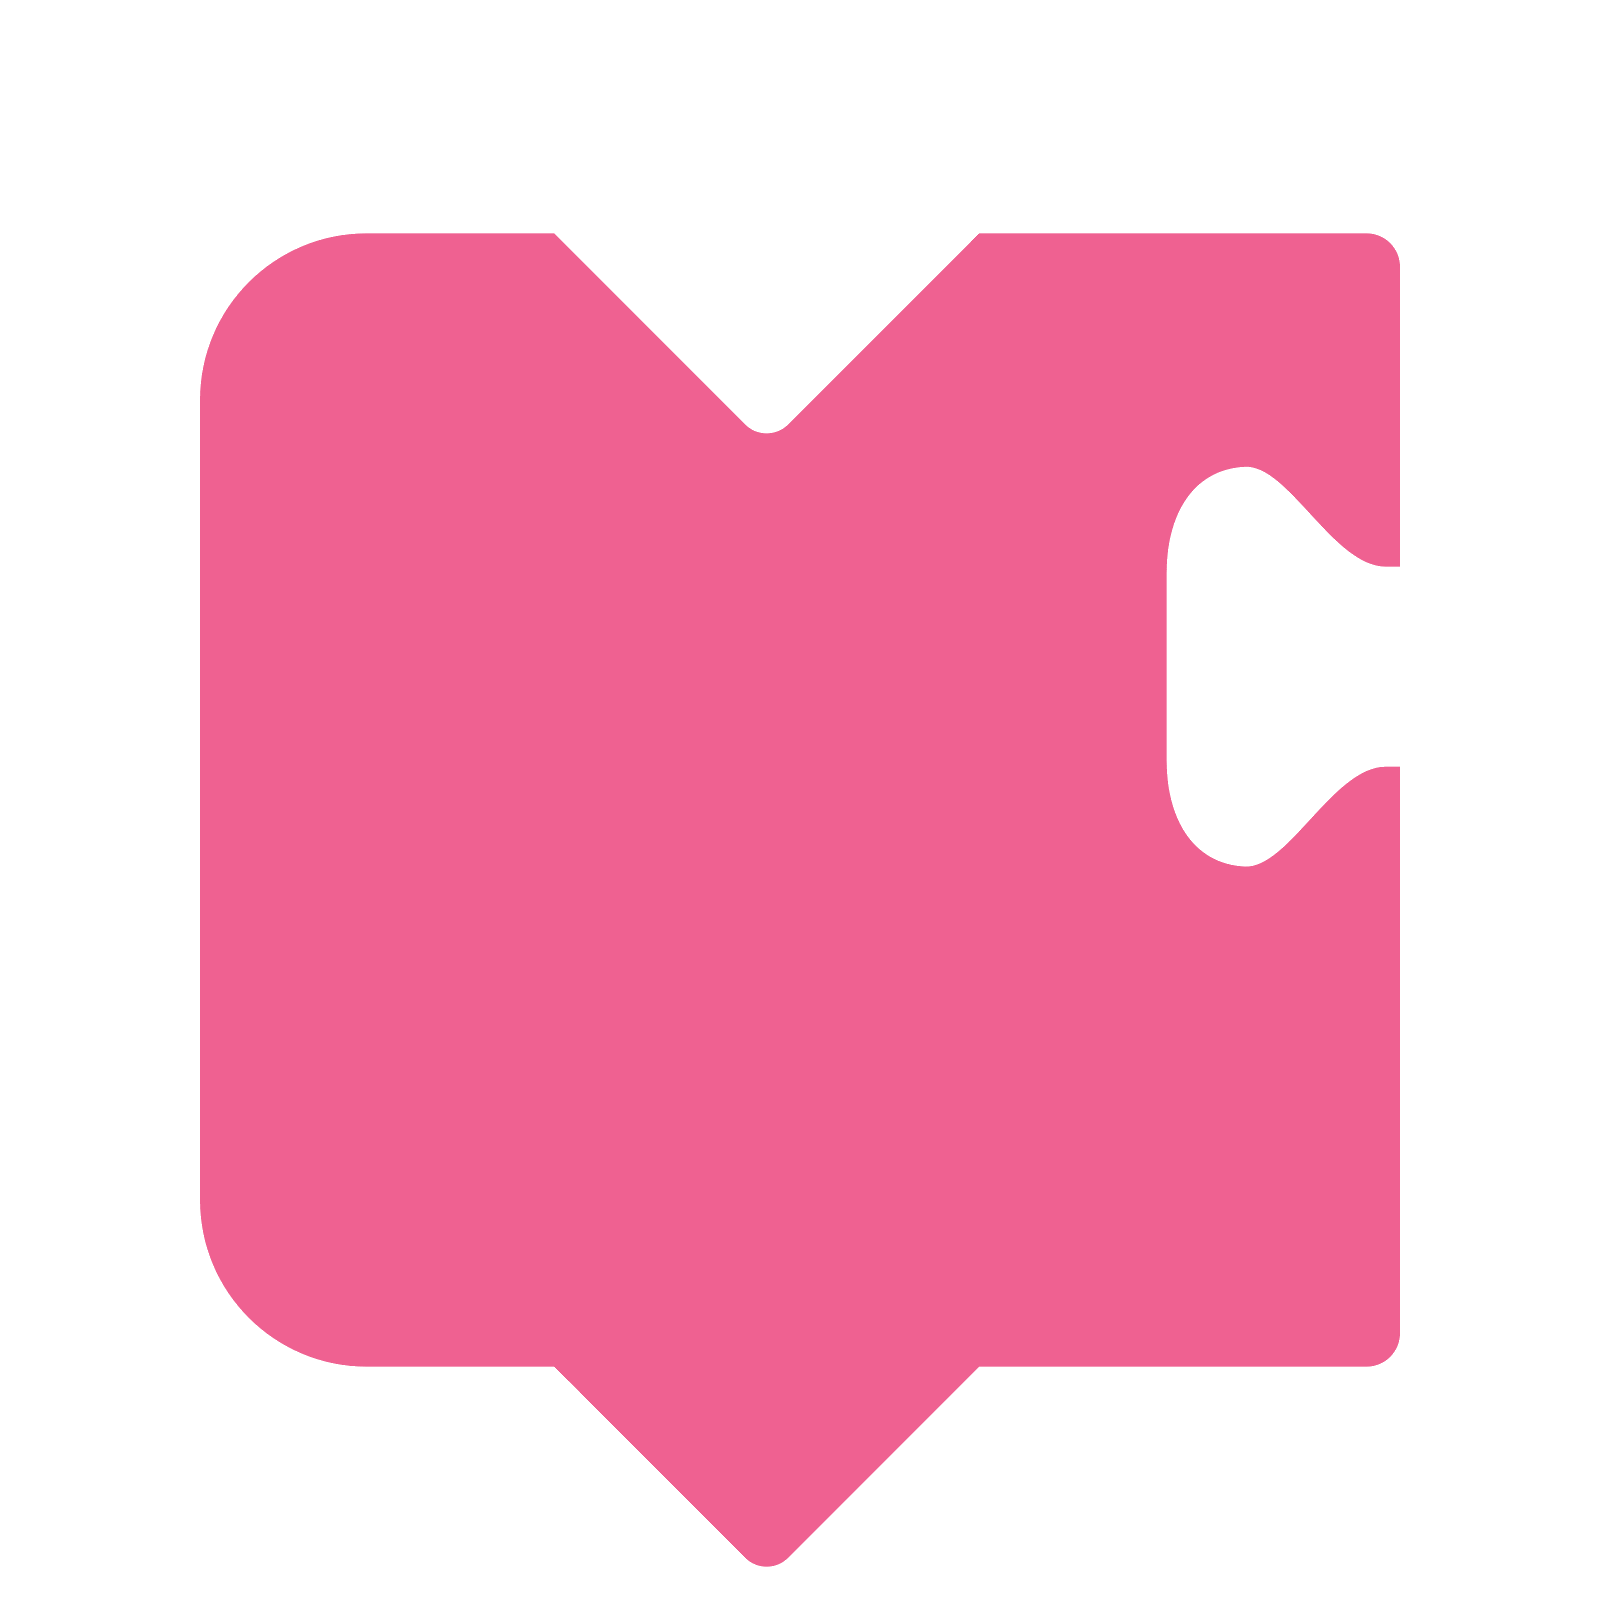 Pink youtube icon png. Icons blockly